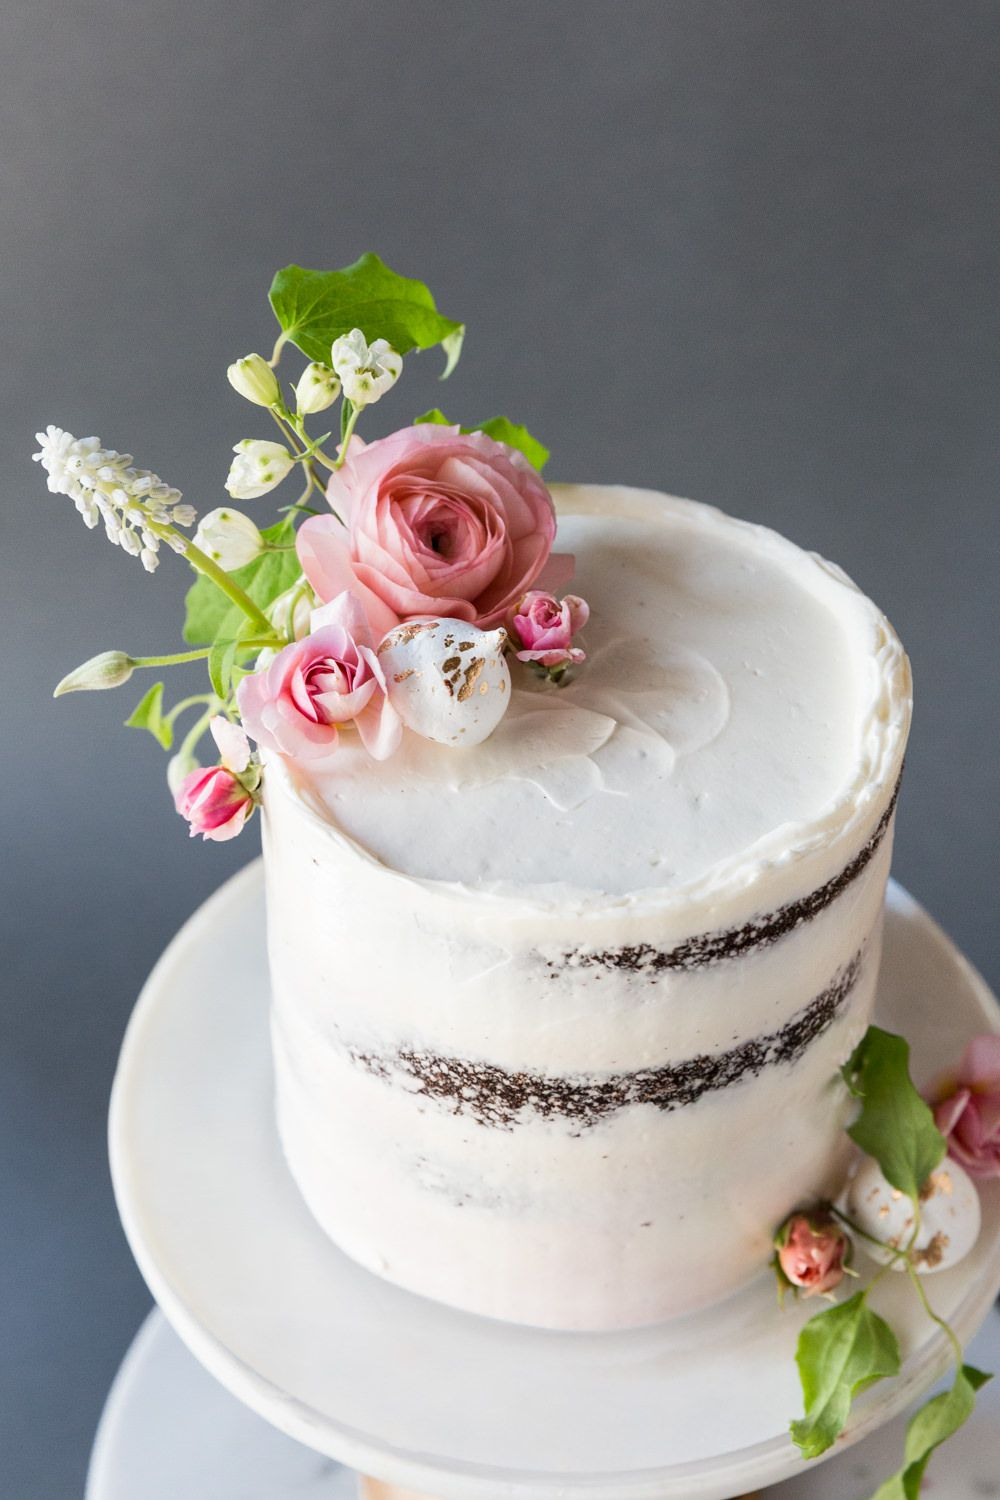 Modern Wedding Desserts From Hey There Cupcake Wedding Cakes